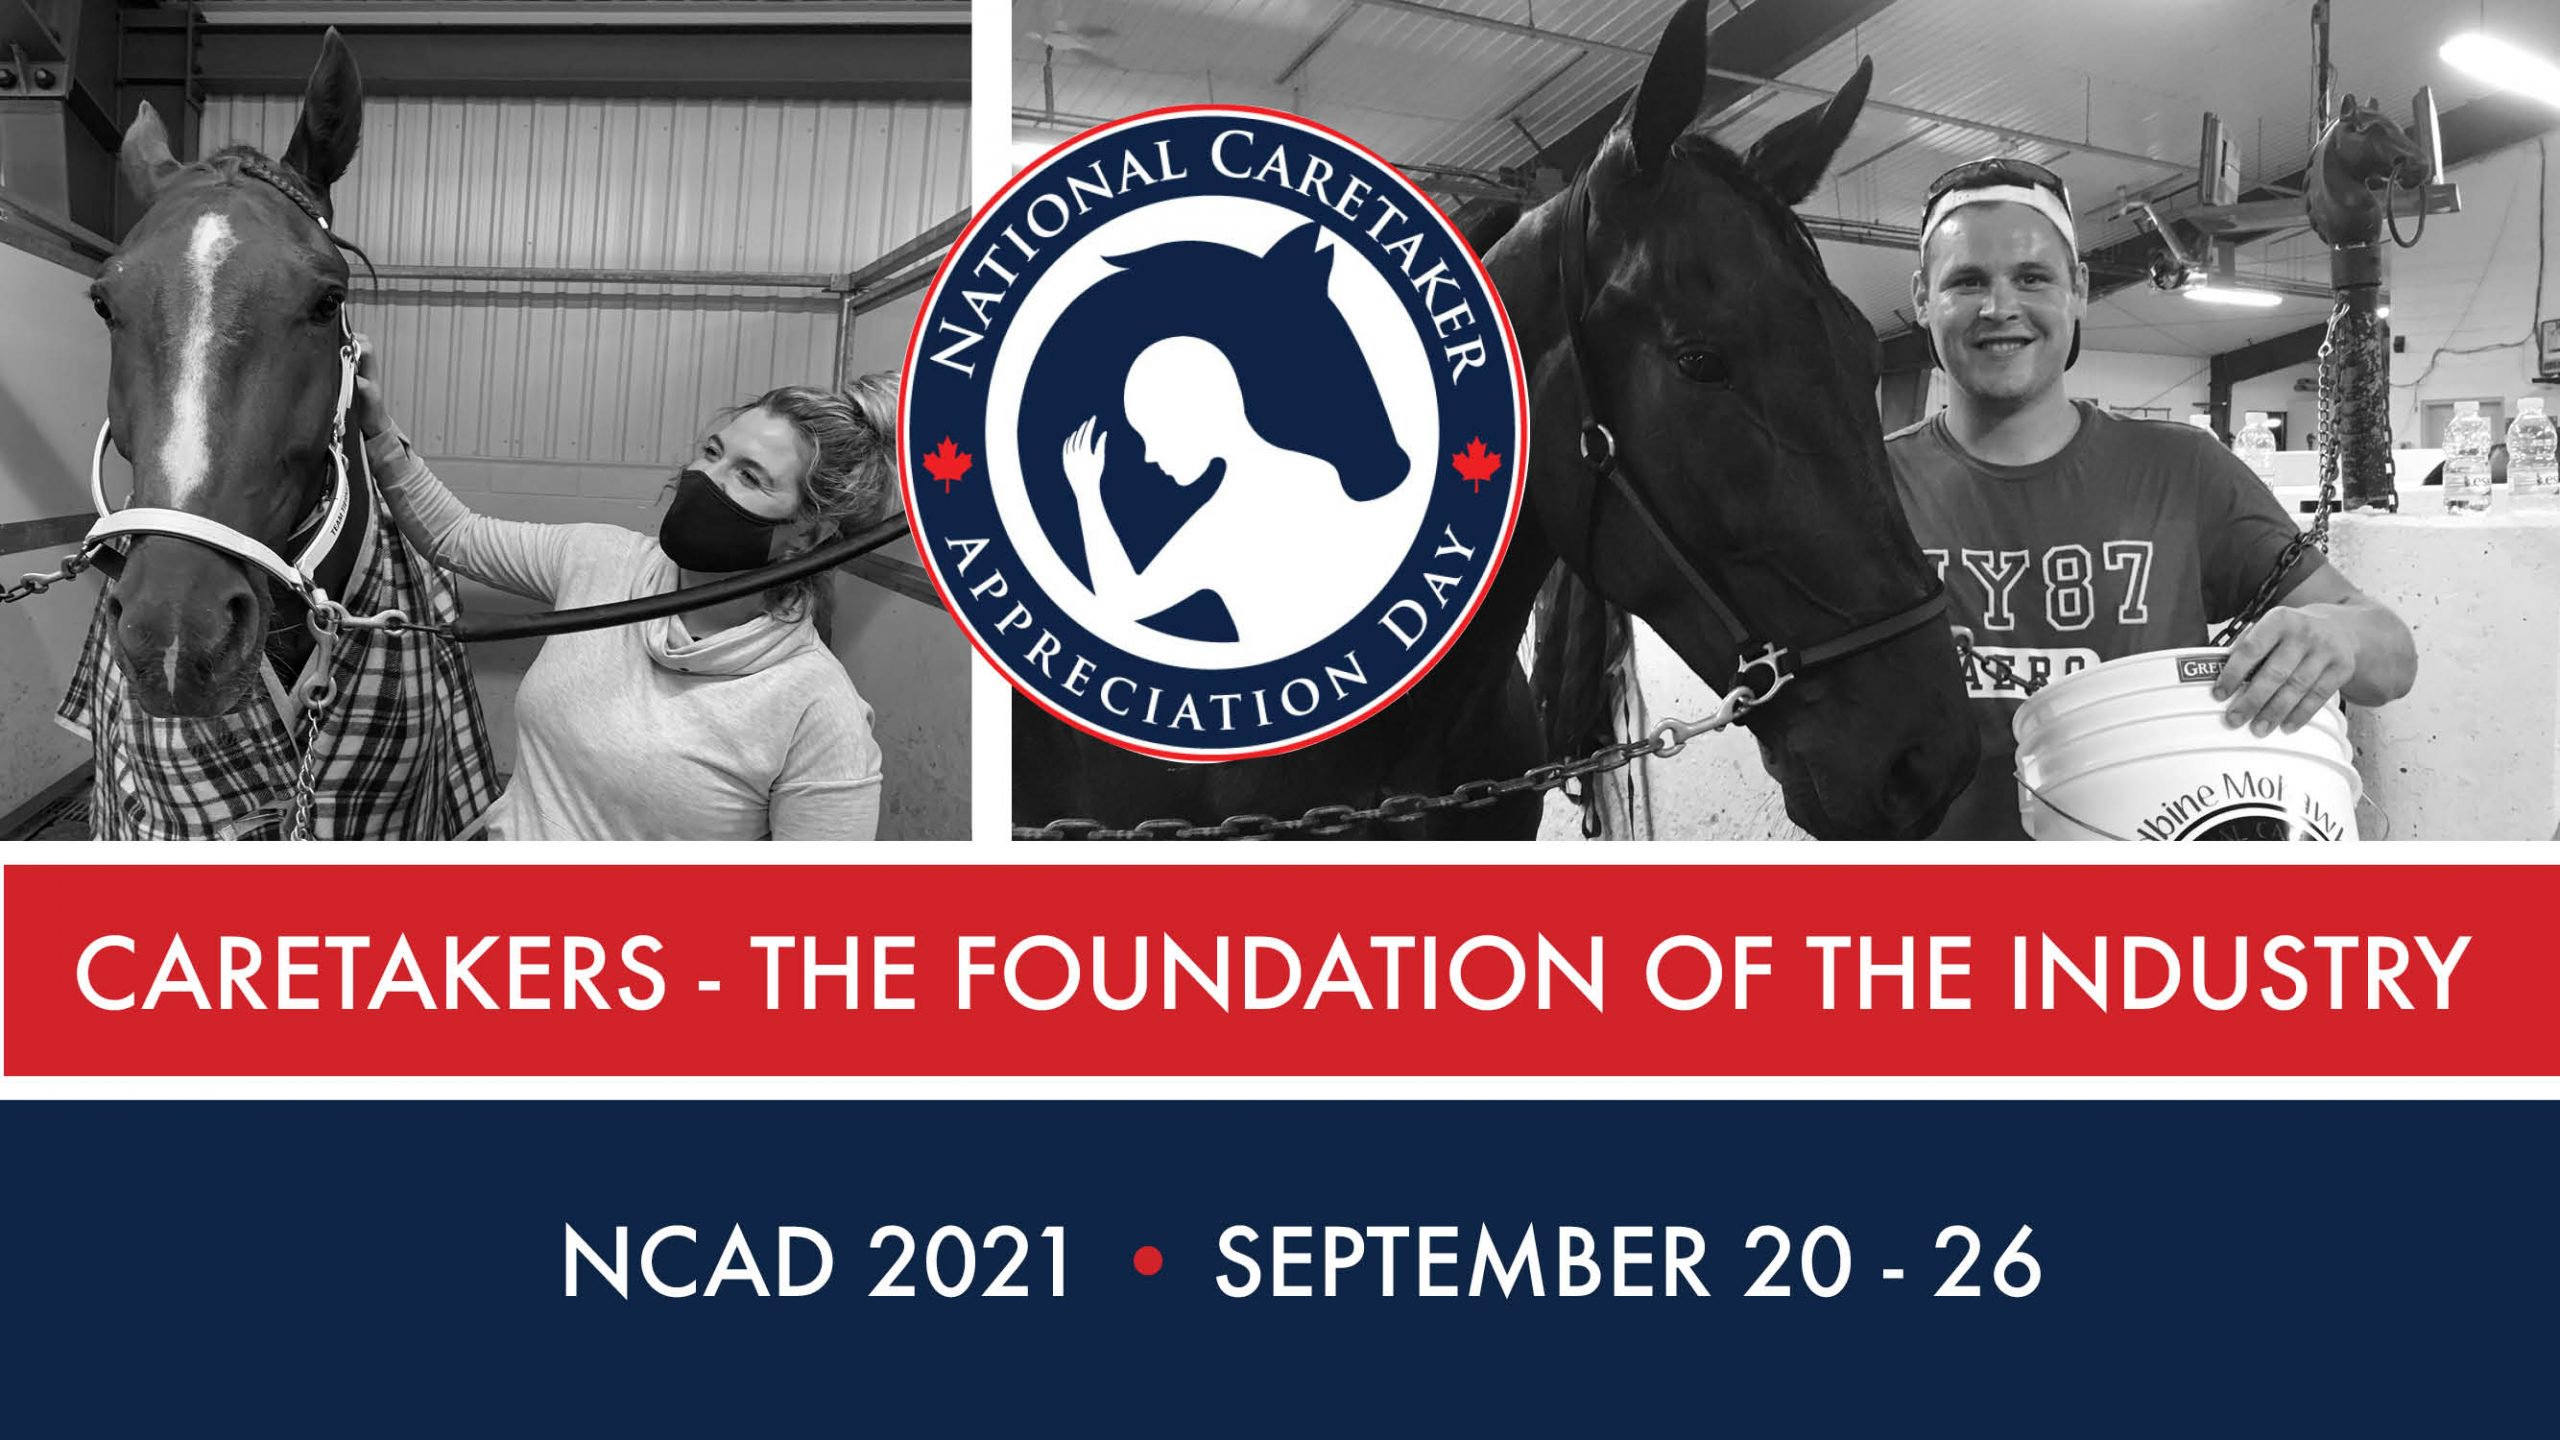 Caretakers - The Foundation of the Industry. NCAD 2021- September 20 - 26.